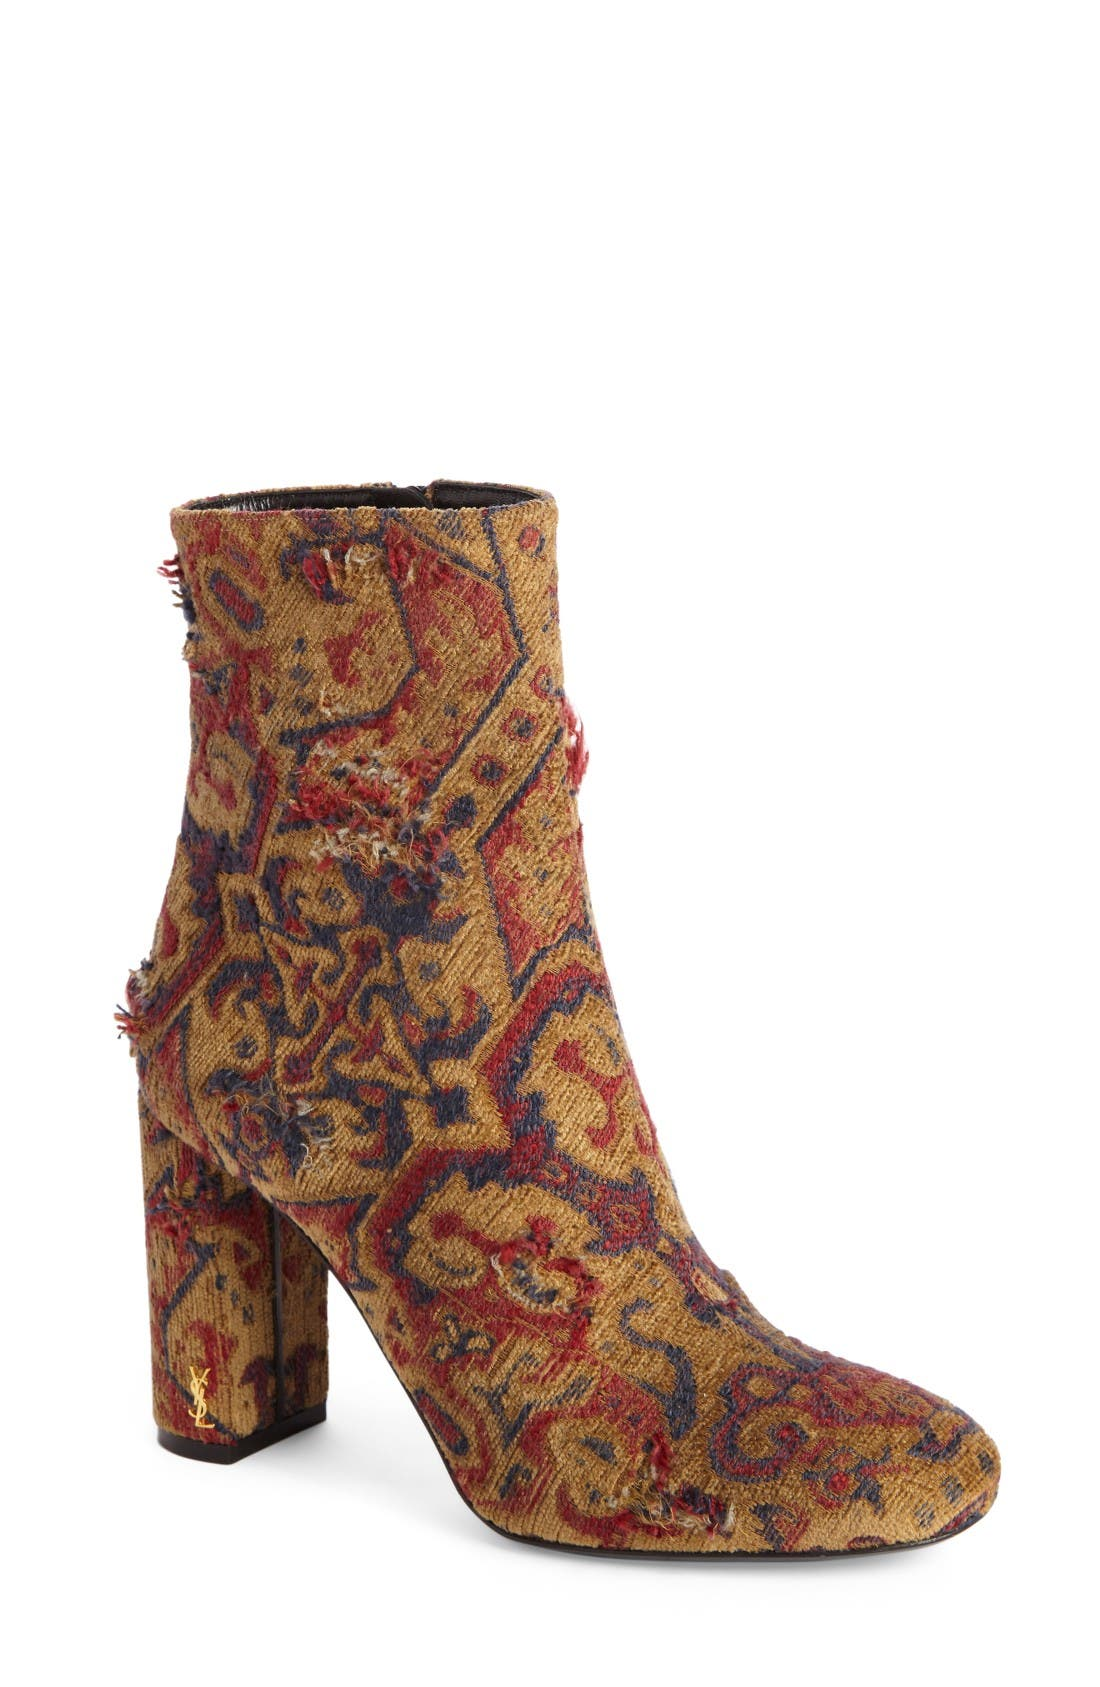 Alternate Image 1 Selected - Saint Laurent Loulou - Tapestry Bootie (Women)